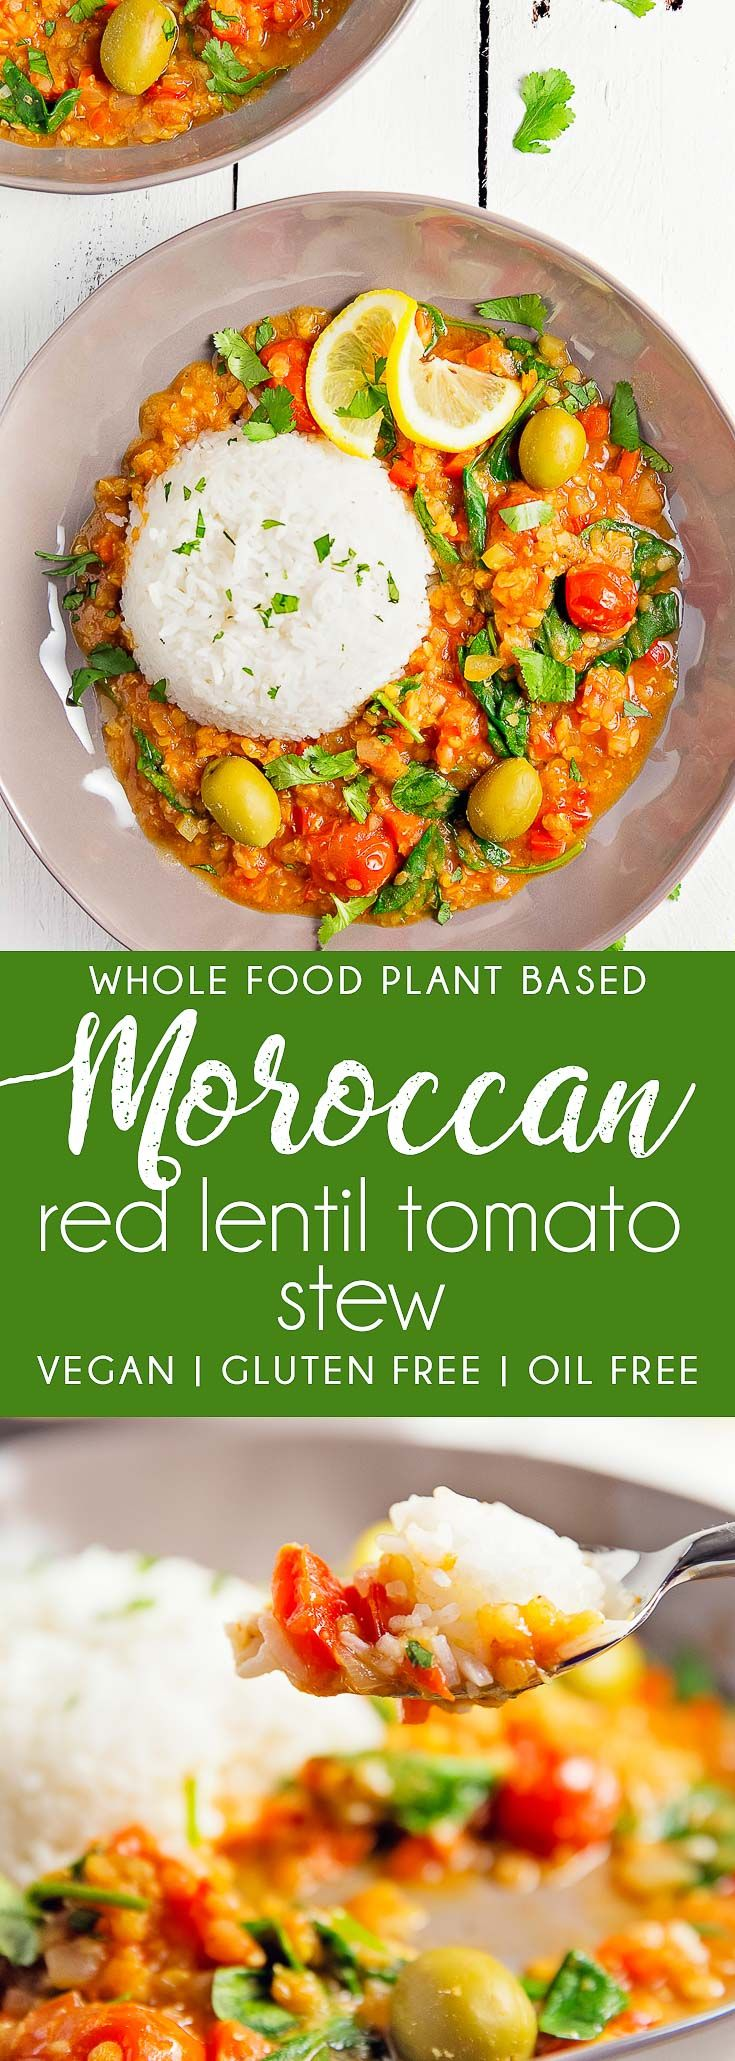 Moroccan Red Lentil Tomato Stew, plant based, vegan, vegetarian, whole food plant based, gluten free, recipe, wfpb, healthy, healthy vegan, oil free, no refined sugar, no oil, refined sugar free, dairy free, dinner party, entertaining, stew